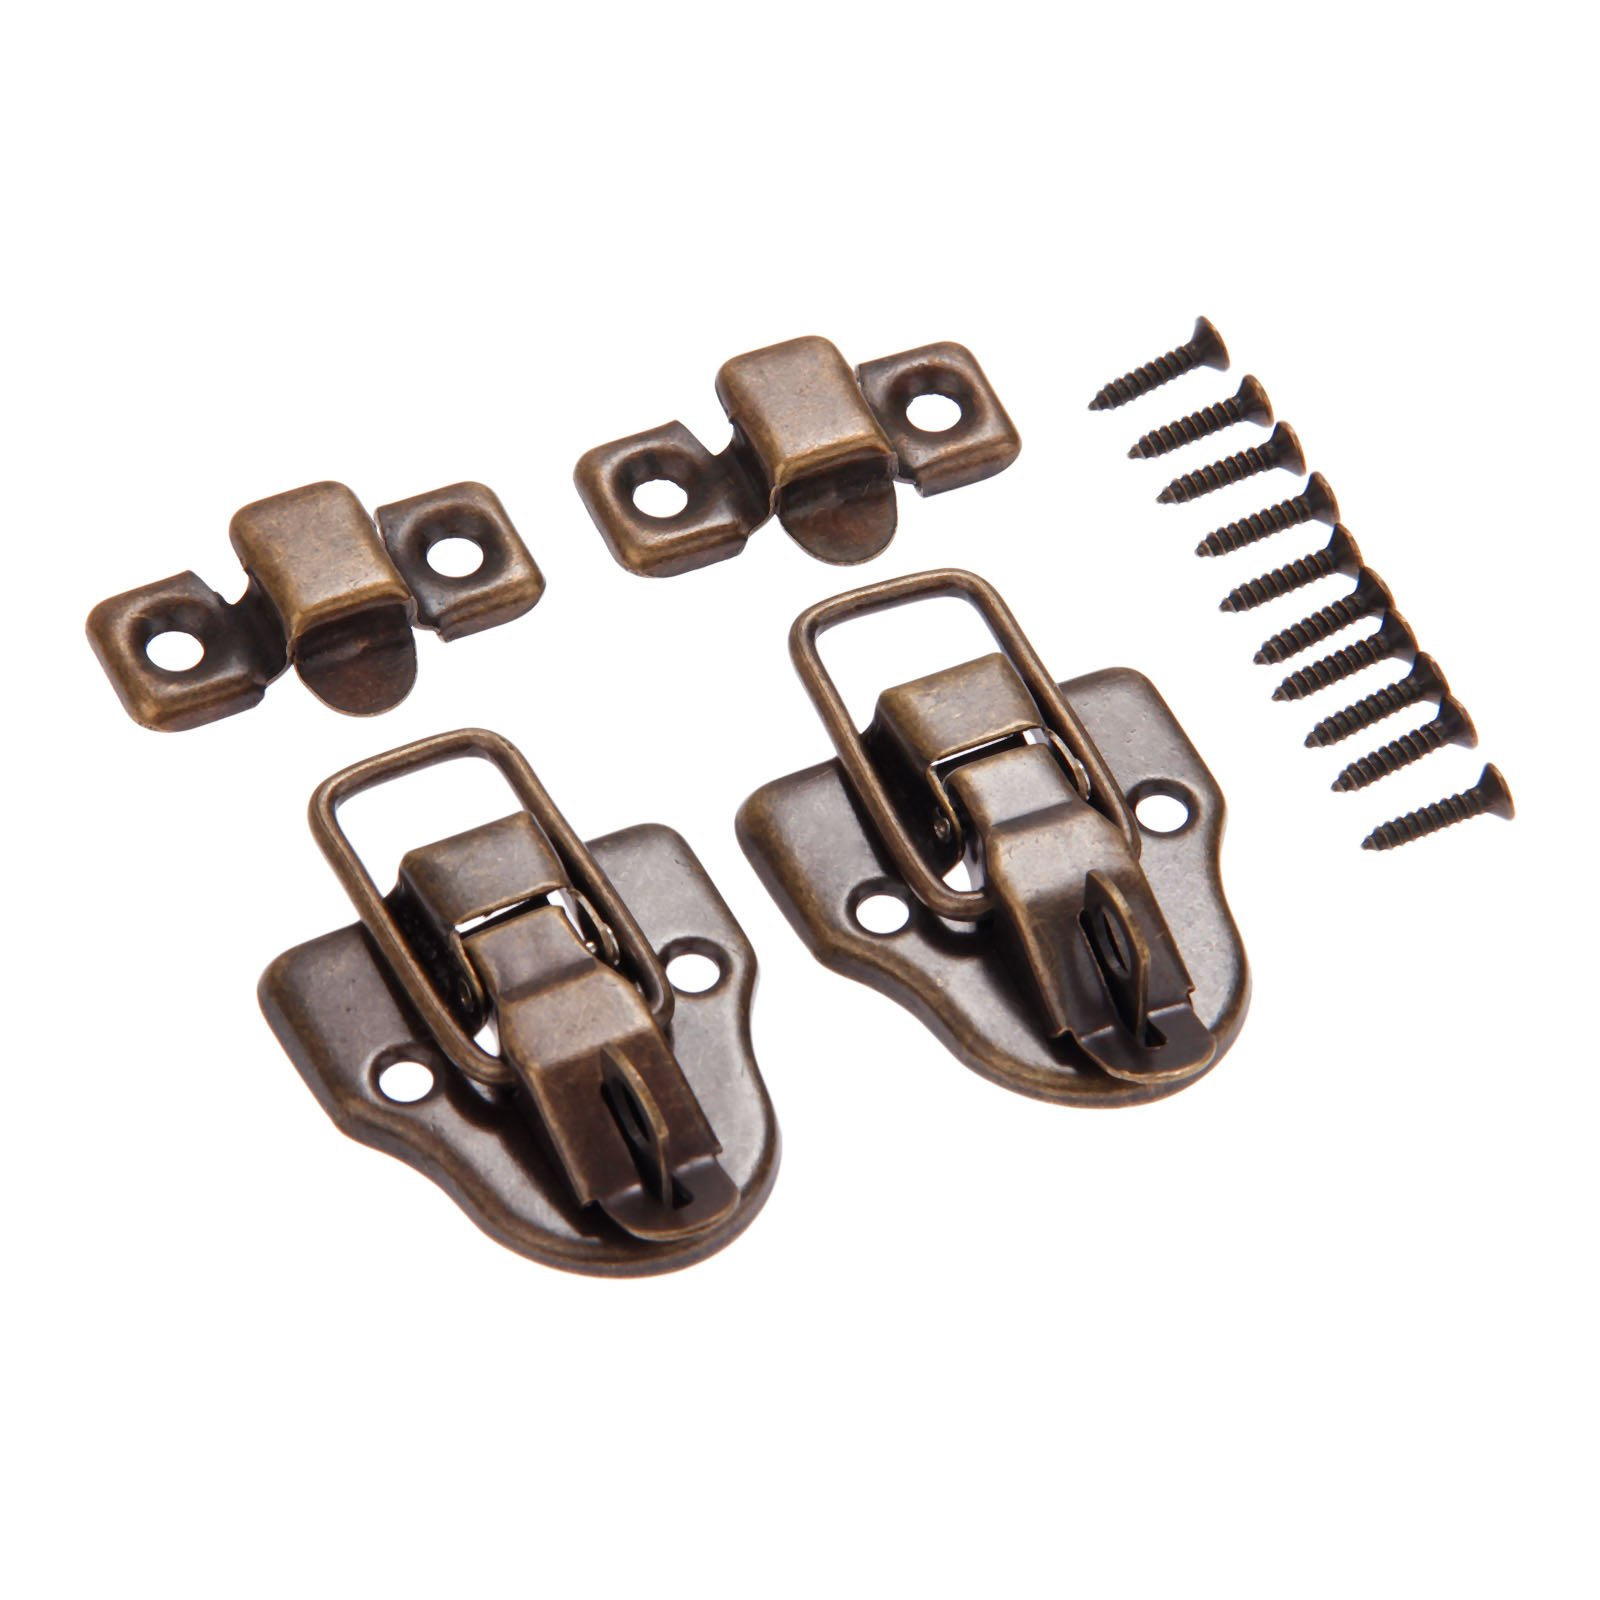 Dophee 10Pcs 2.32''x1.57'' Antique Bronze Retro Style Iron Toggle Fit Case Box Chest Trunk Latch Hasps by dophee (Image #4)